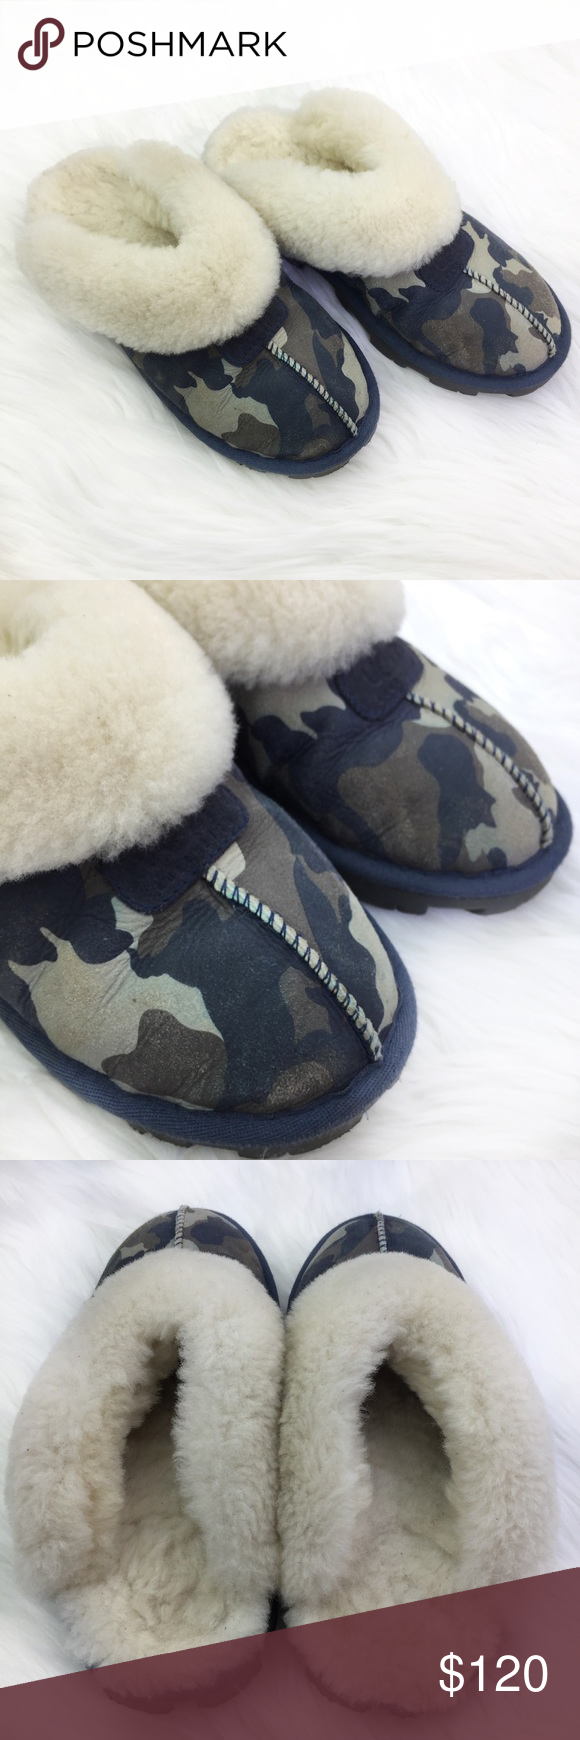 6bb77d4ca3725 UGG Coquette Camo Sheepskin Slipper Clogs •UGG Coquette Camo Suede  Sheepskin Slipper Clogs •Women's